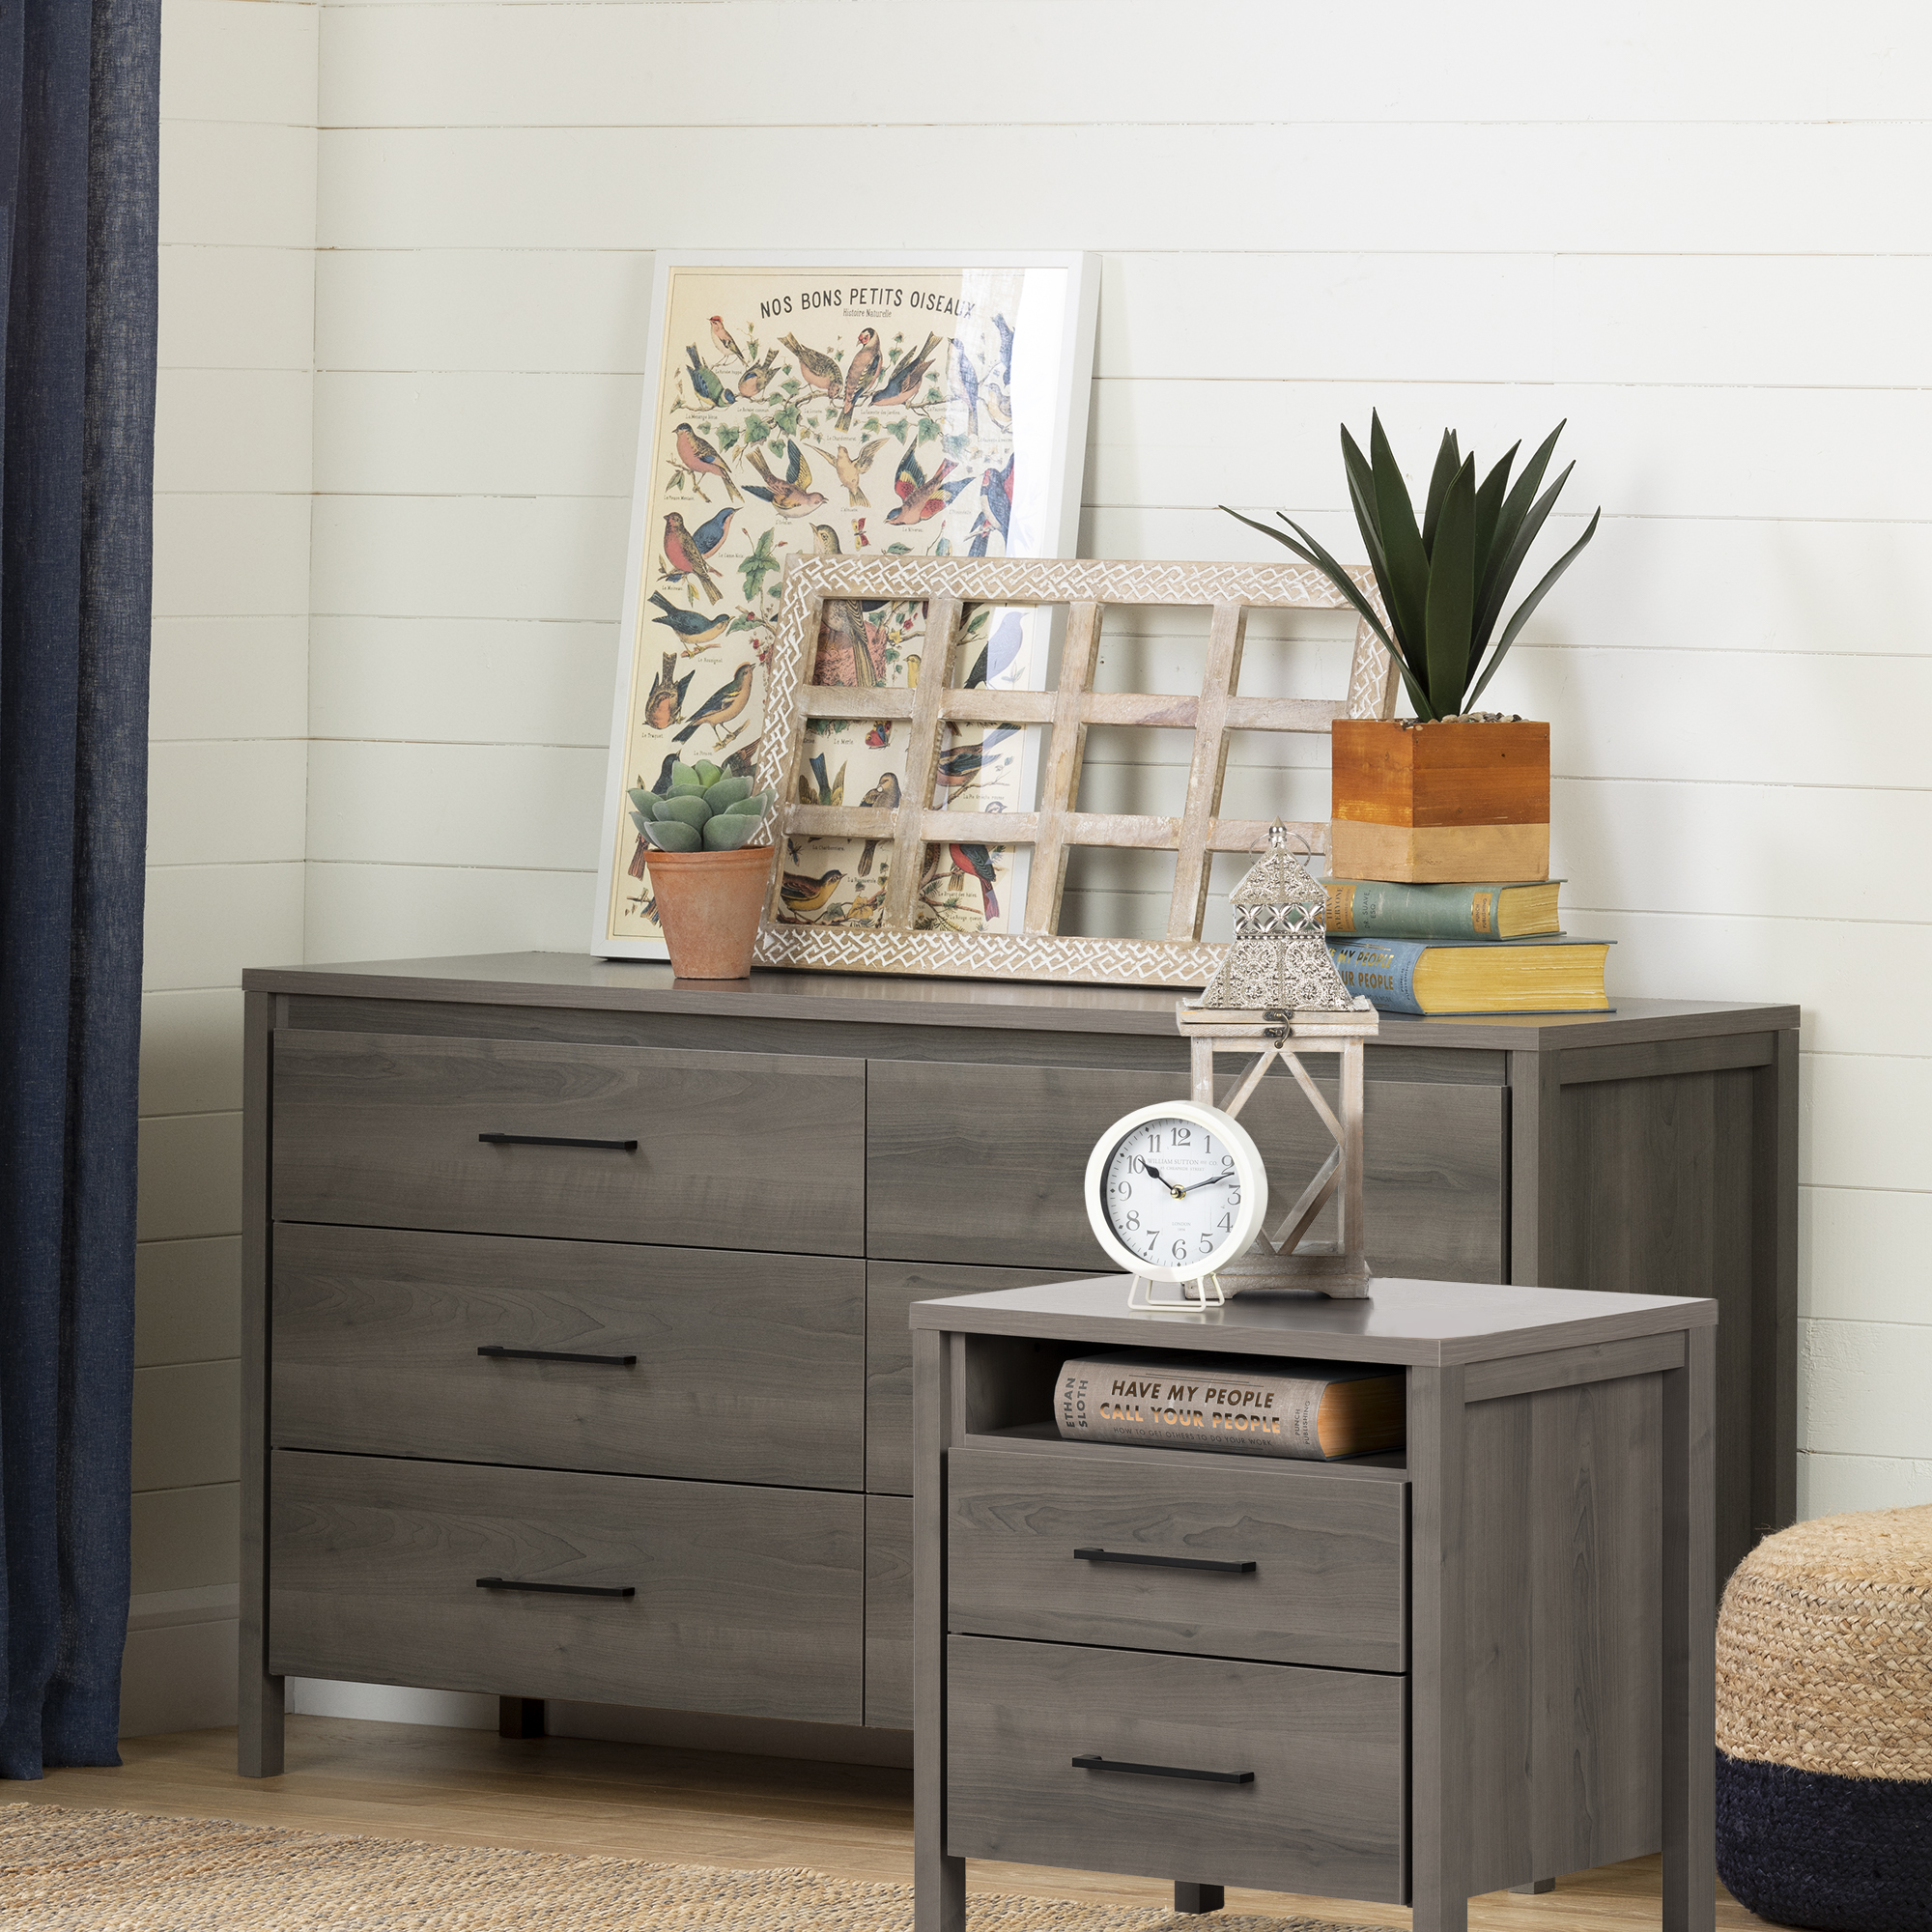 south shore gravity 6 drawer double dresser and nightstand gray maple